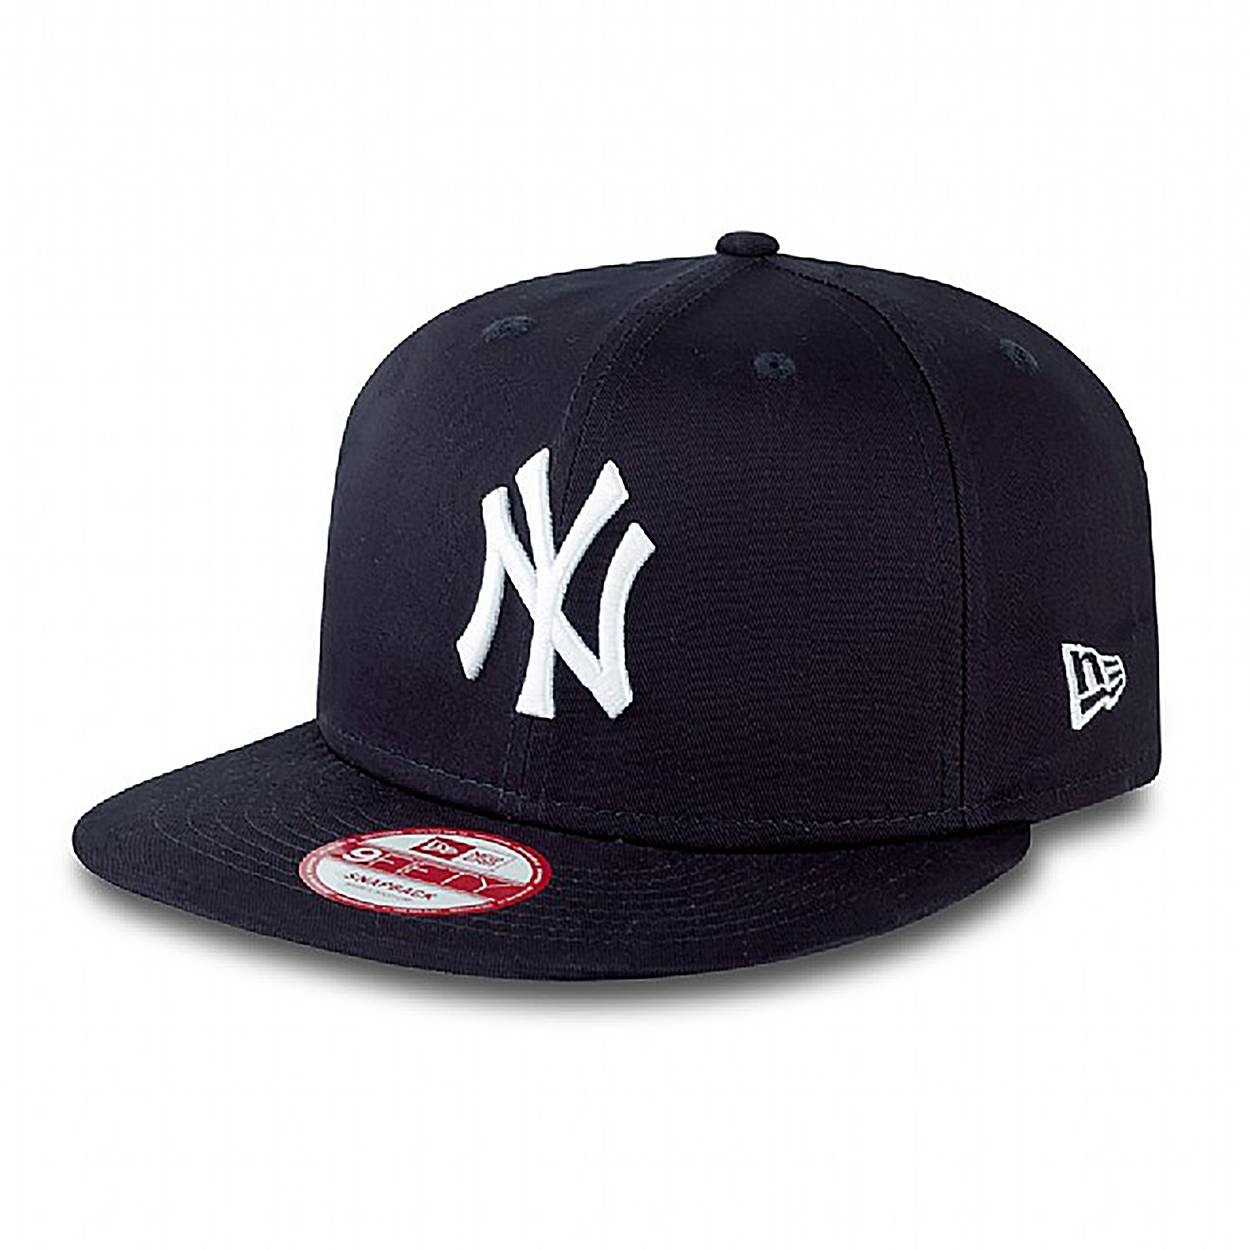 NEW ERA NEW Mens NY Yankees Essential 9Fifty Snapback Cap Navy BNWT ... f72e50bae10